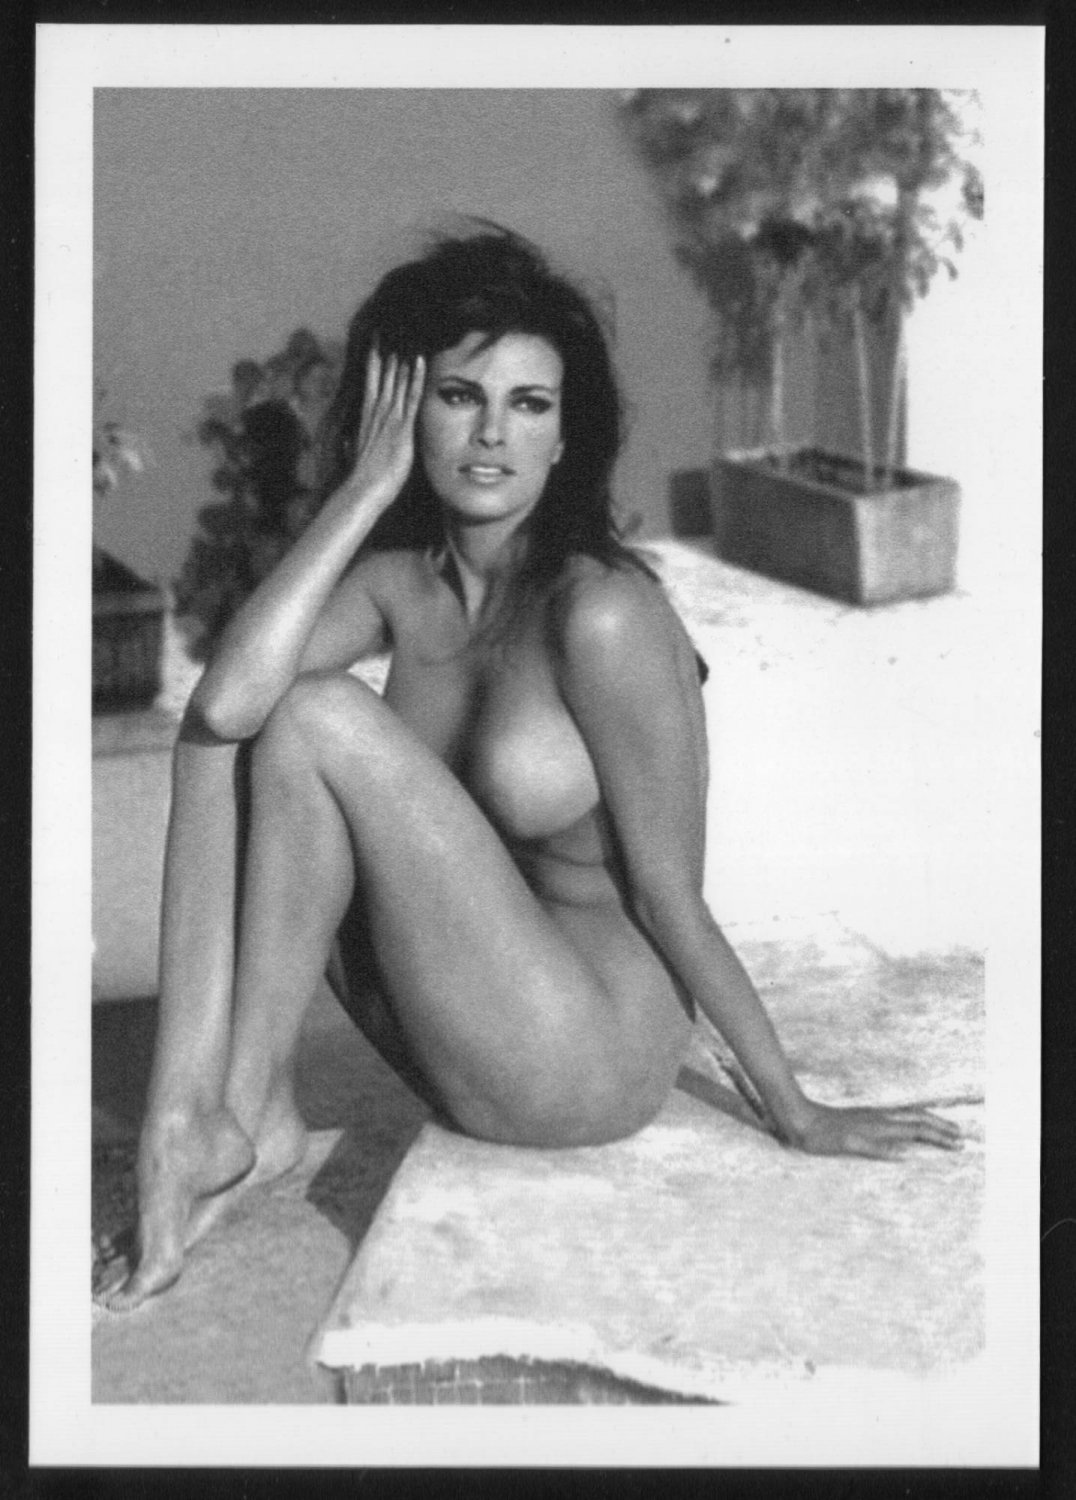 Raquel Welch - Wikipedia